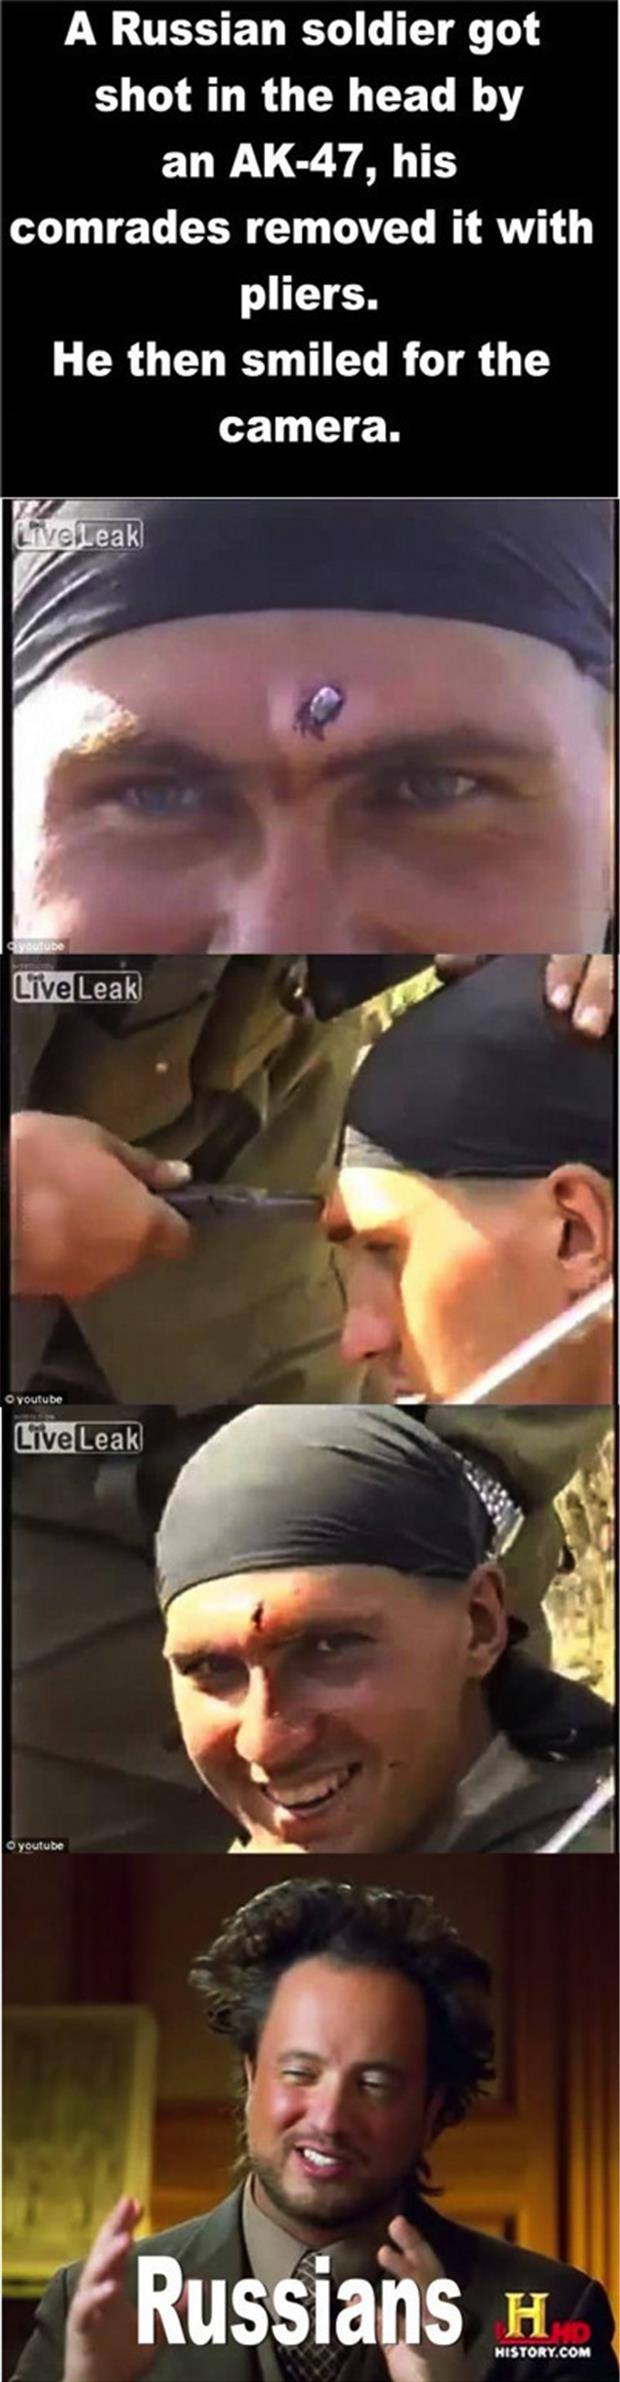 russian soldier gets shot in the head with an Ak-47